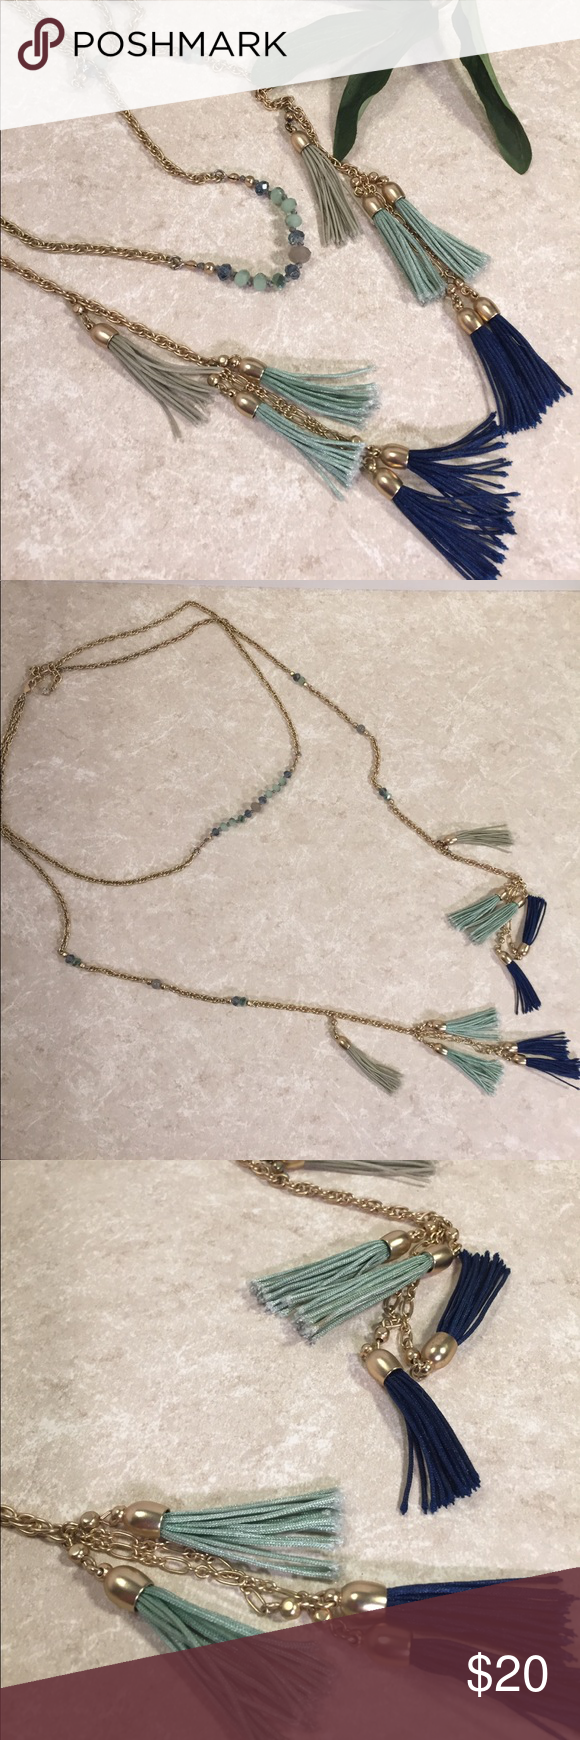 Long tassel necklace bronze teal and mint This is a beautiful chain necklace, single loop with two free tassels with several tassels at ends, see pictures for details. Good condition. Be sure and check out other items in closet and bundle to receive discounts. Jewelry Necklaces